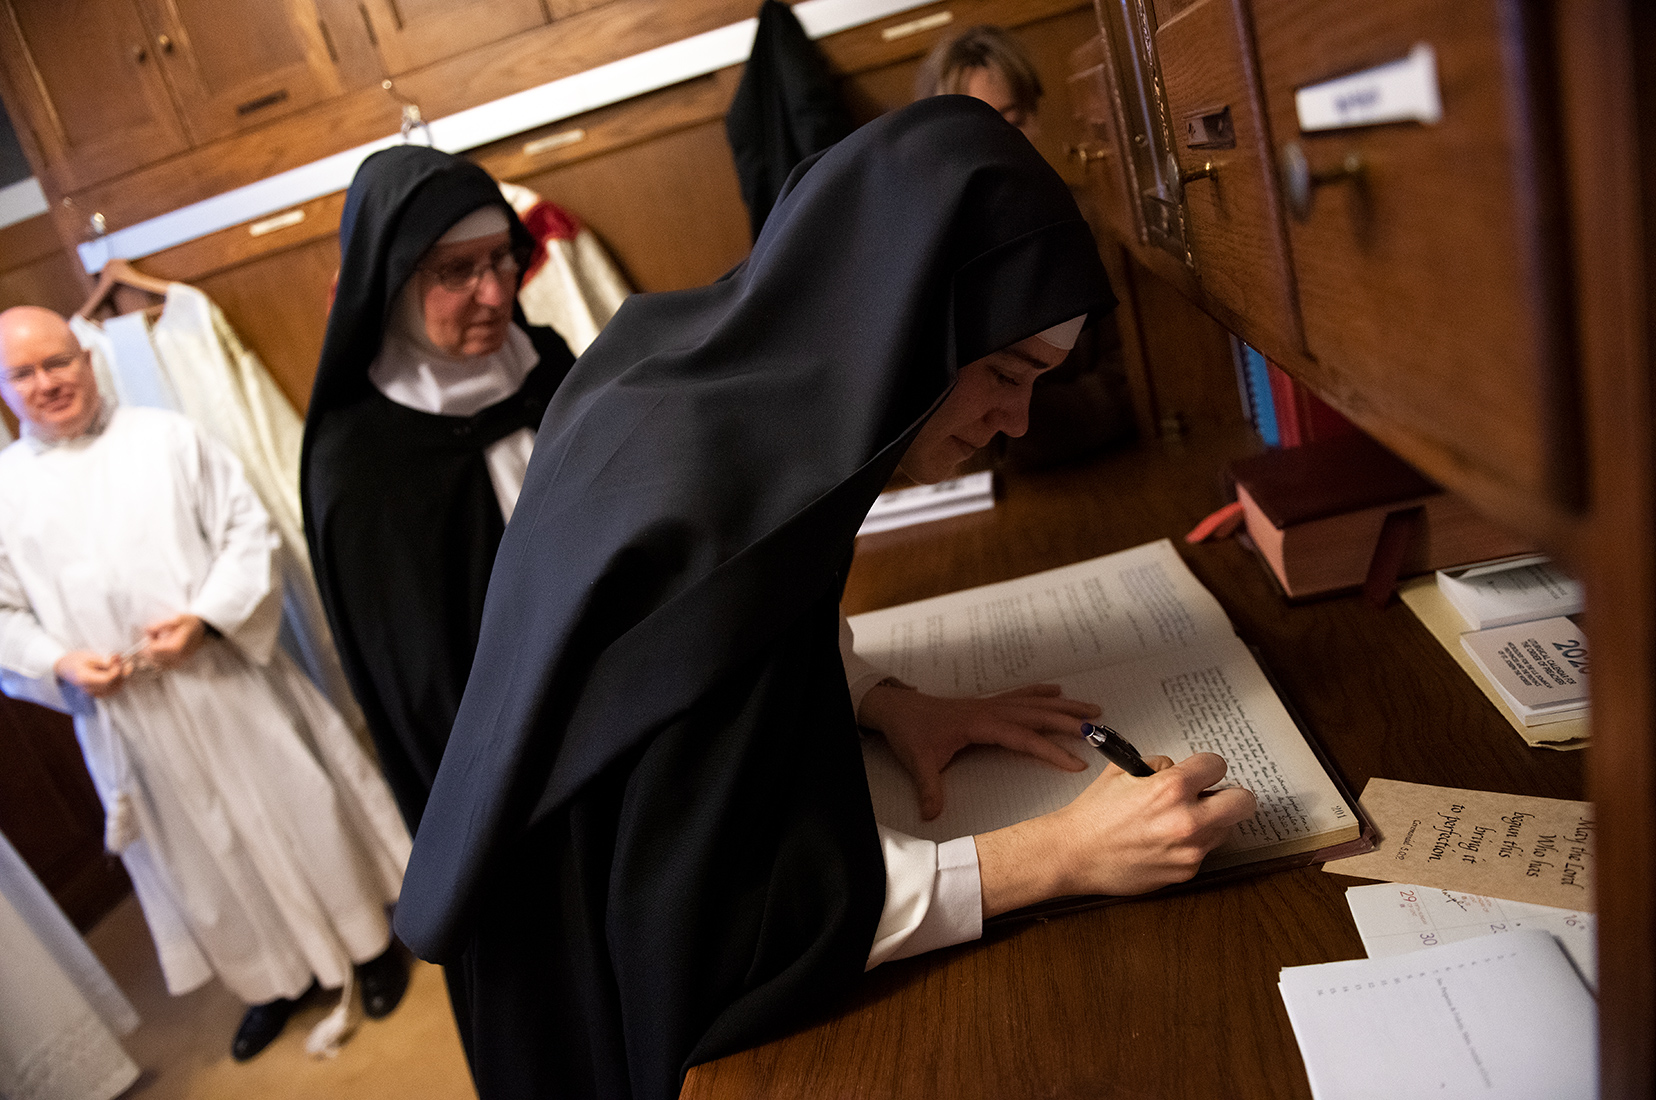 Dominican Nuns Sisters of Summit First Profession